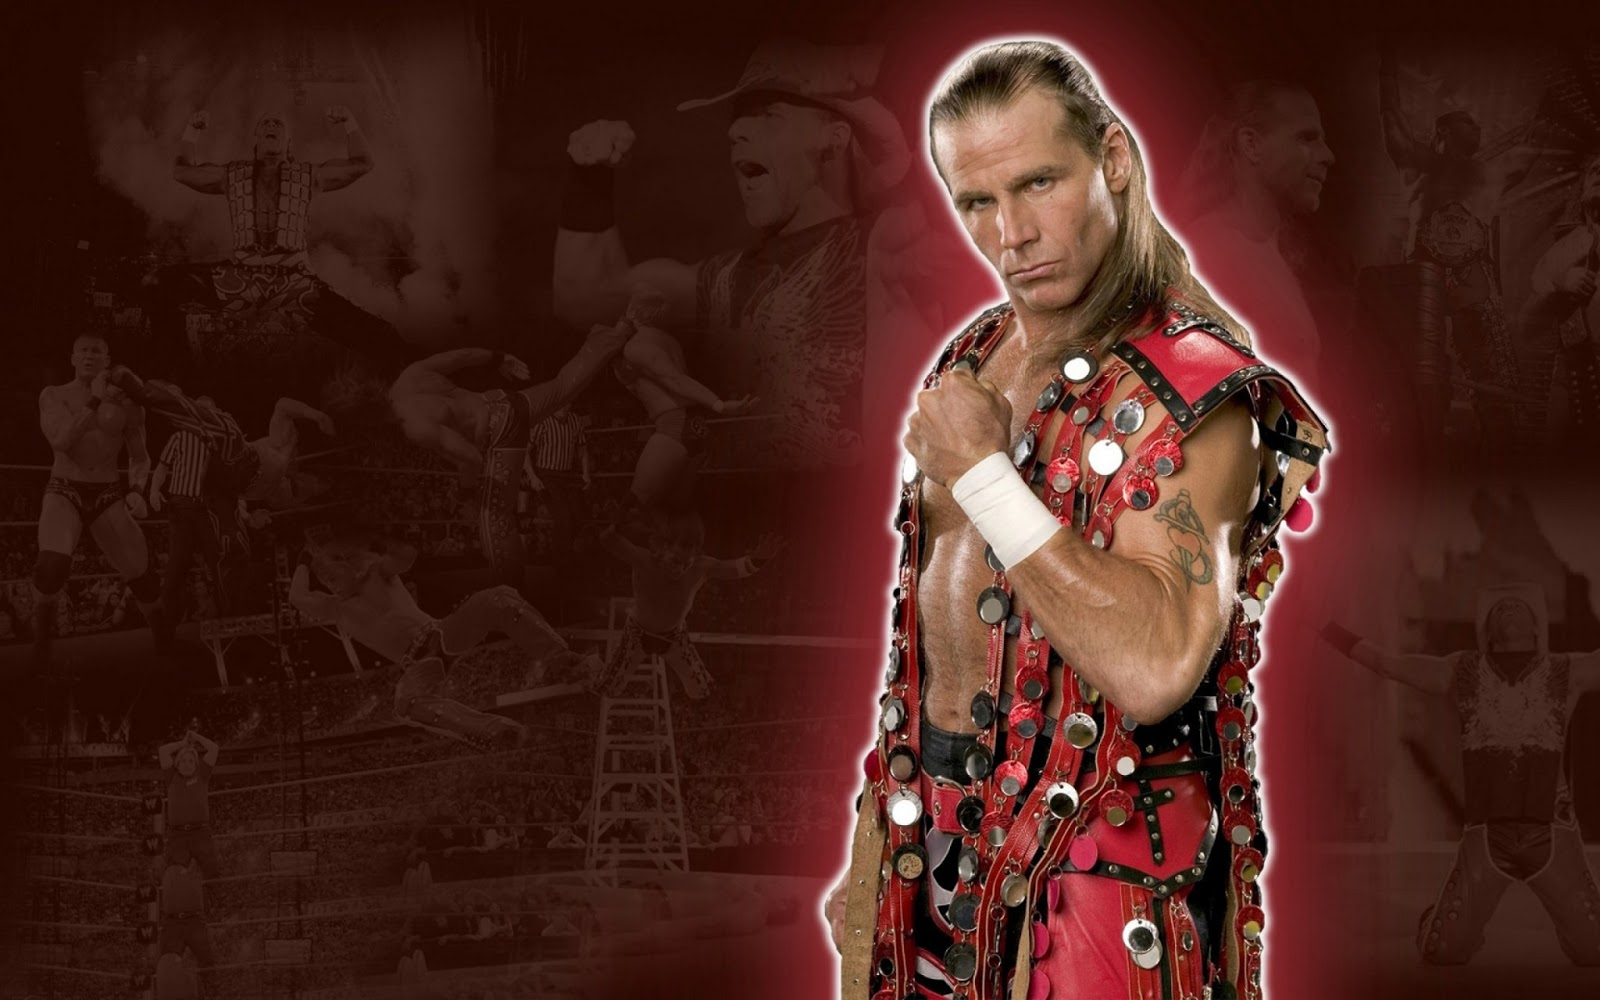 All Wallpapers WWE Shawn Michael hd New Nice Wallpapers 2013 1600x1000